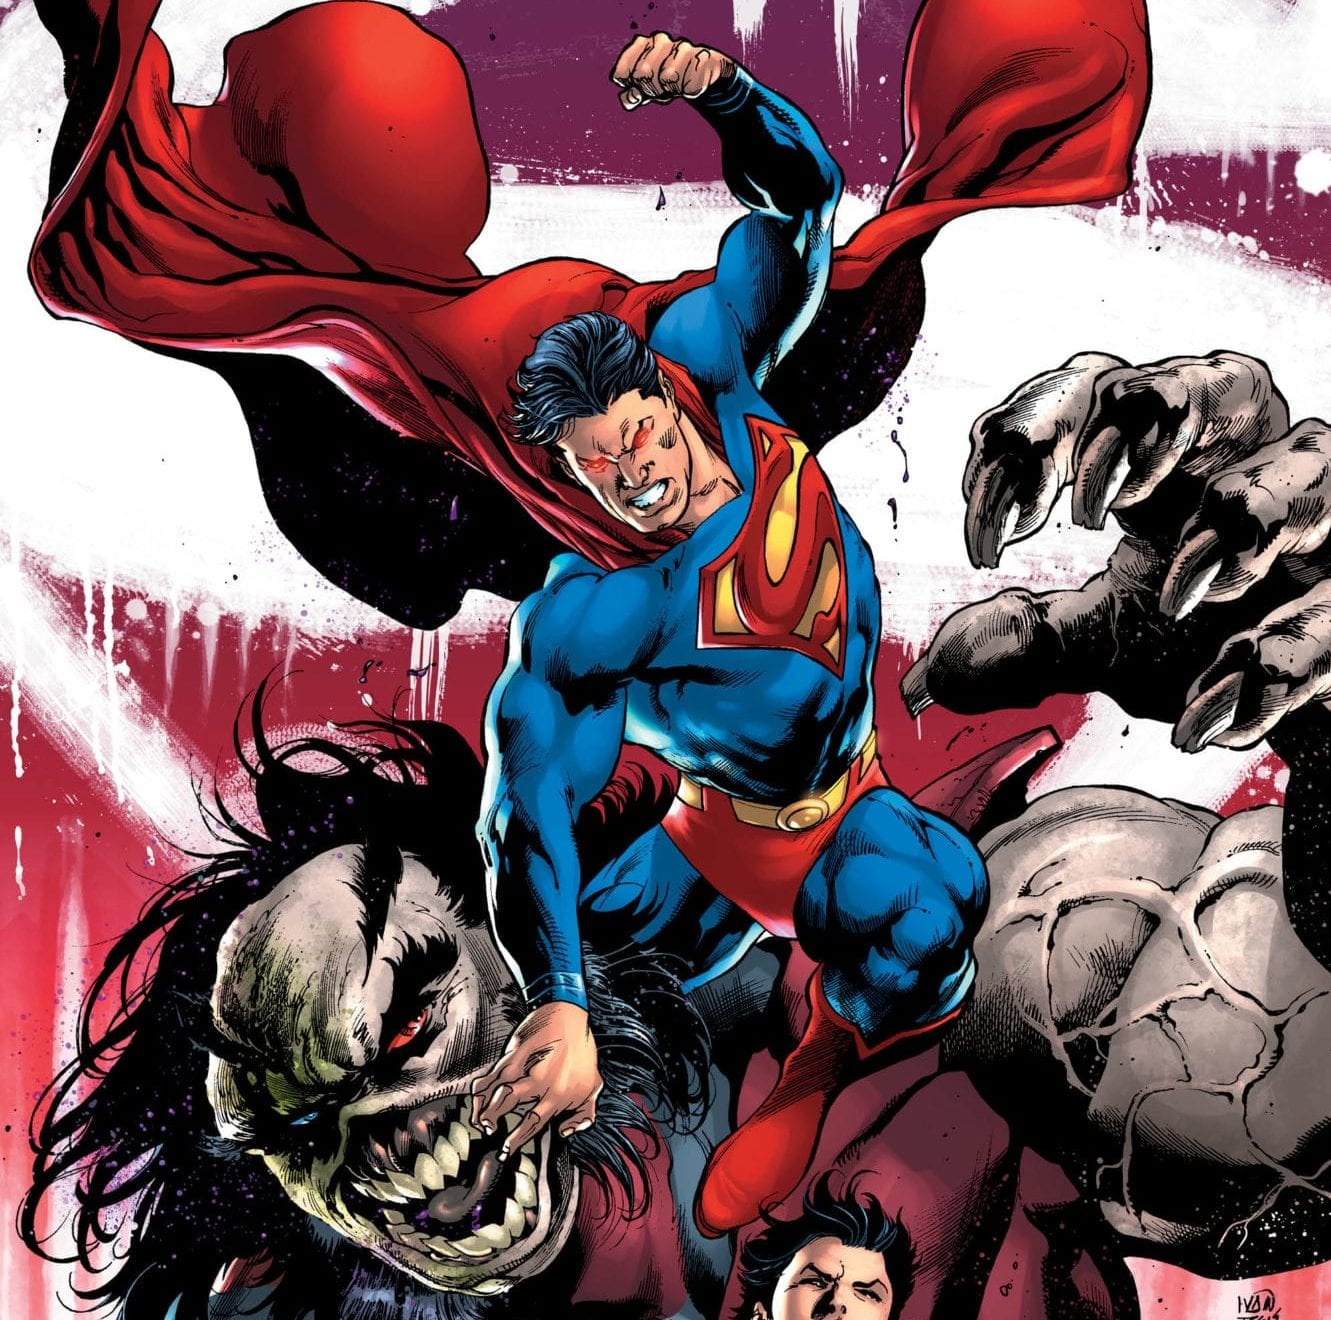 SUPERMAN #12 main cover art